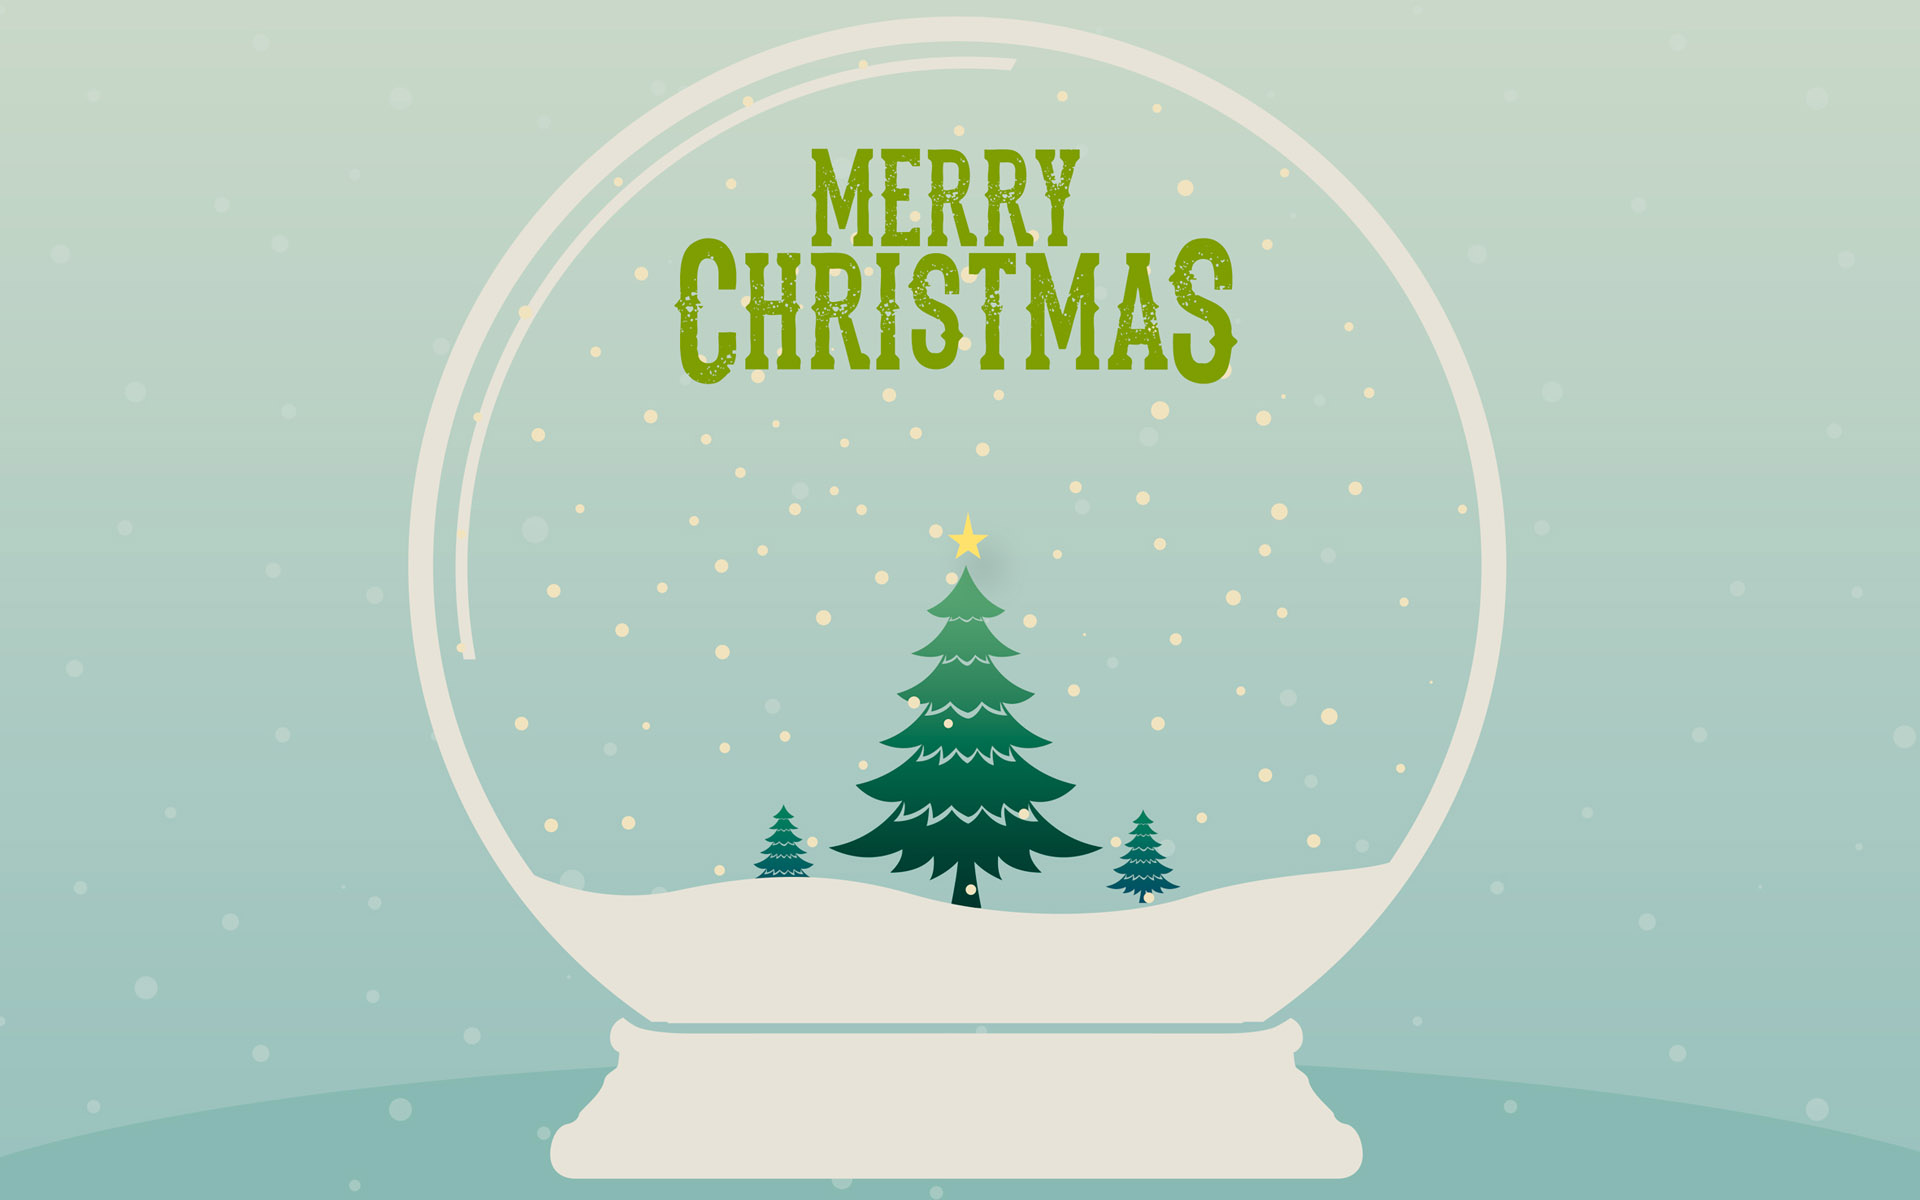 Merry Christmas Wallpaper Pictures